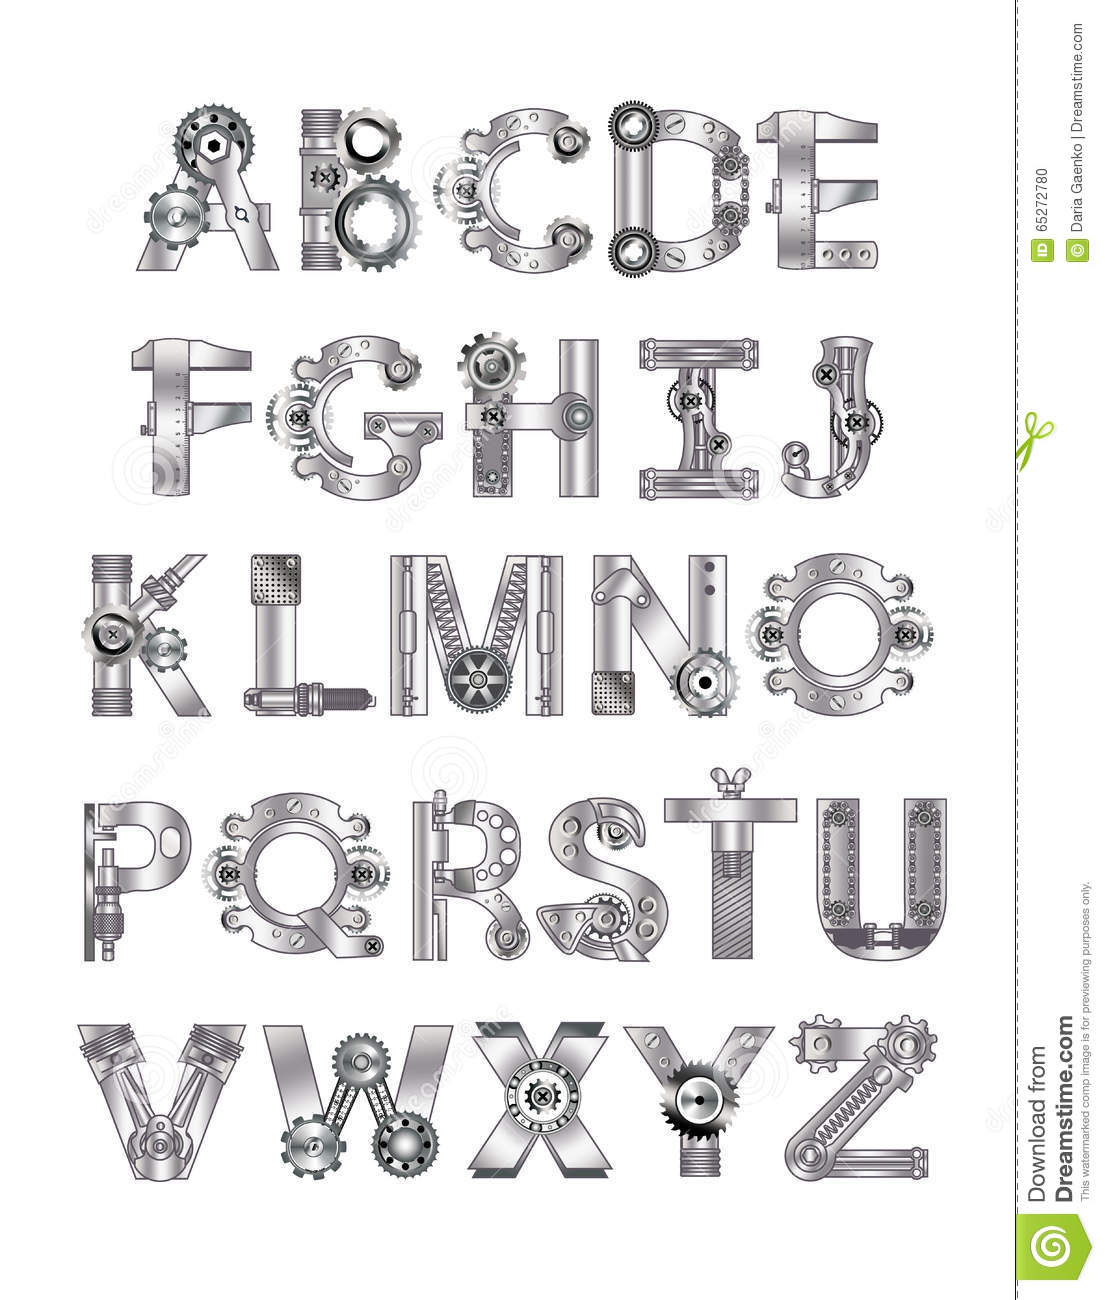 Lettering From A To Z Top Tattoo Lettering Generator Images For Pinterest Tattoos besides Graffiti Alphabet Letter R also Stock Images Illustration Mailbox Image28936514 moreover Letras Para Tatuajes Cursiva Abecedario together with Chinese Dragon Tattoos. on letter z art